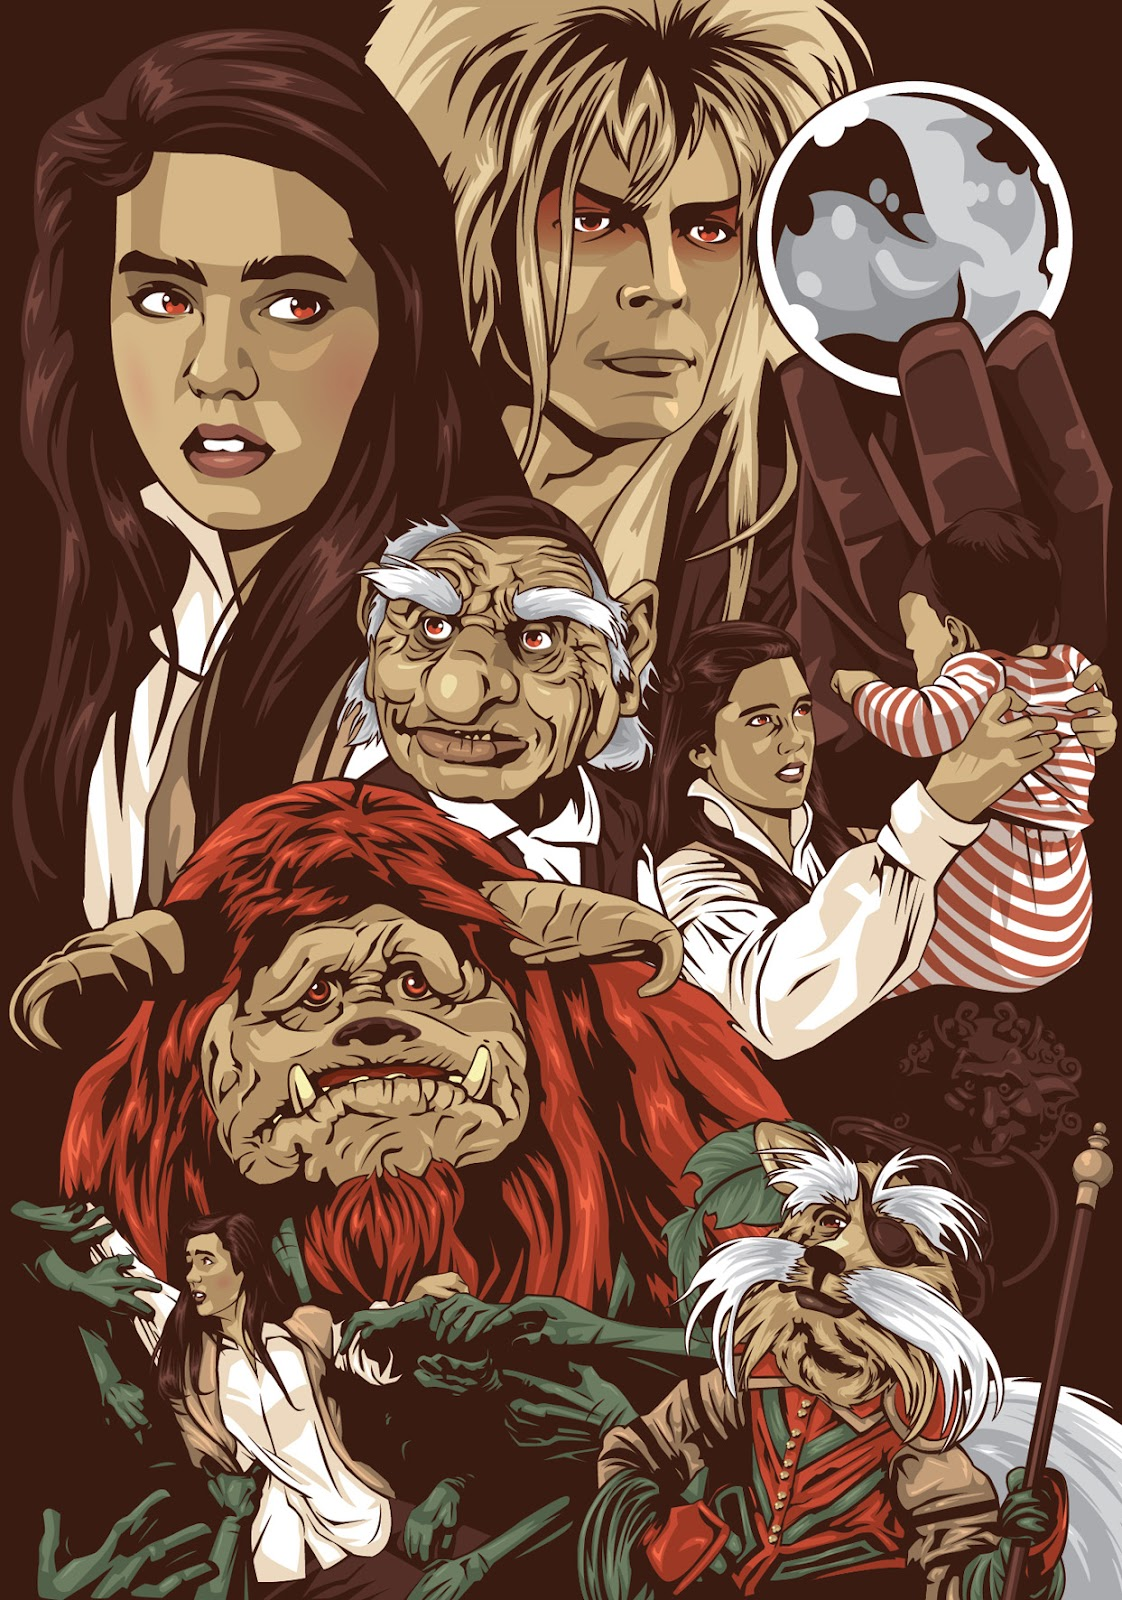 The Geeky Nerfherder: Cool Art: Labyrinth by Mark Reihill Labyrinth 1986 Poster